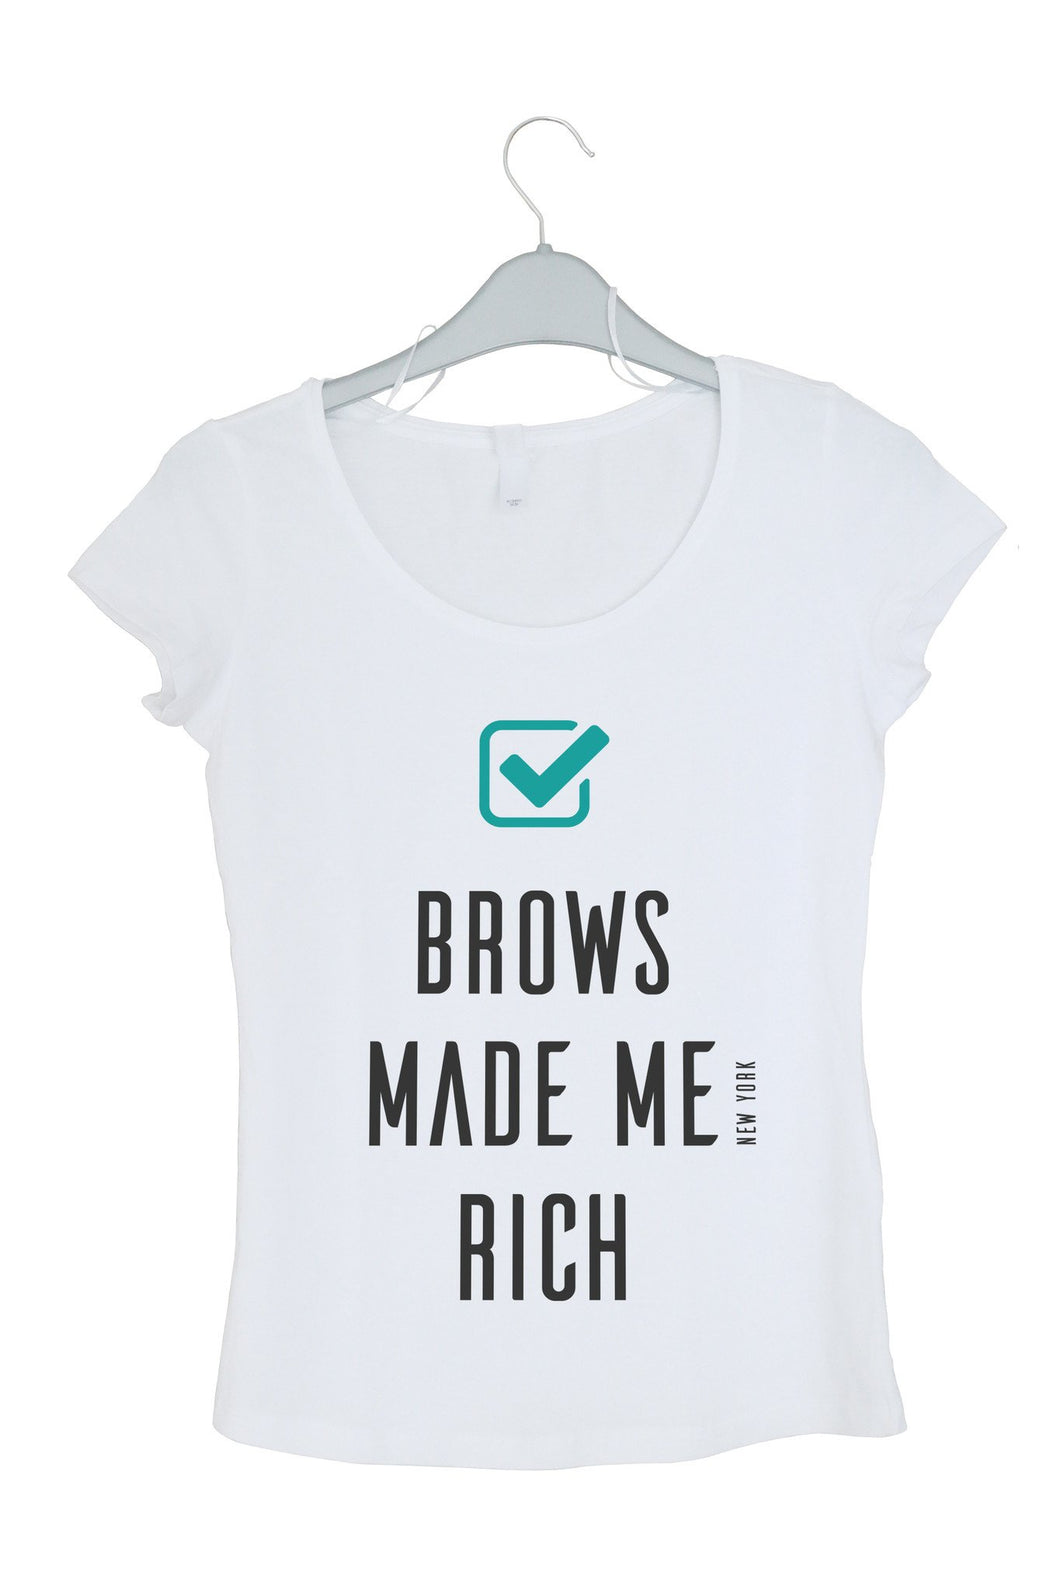 Brows Made Me Rich - Checked!